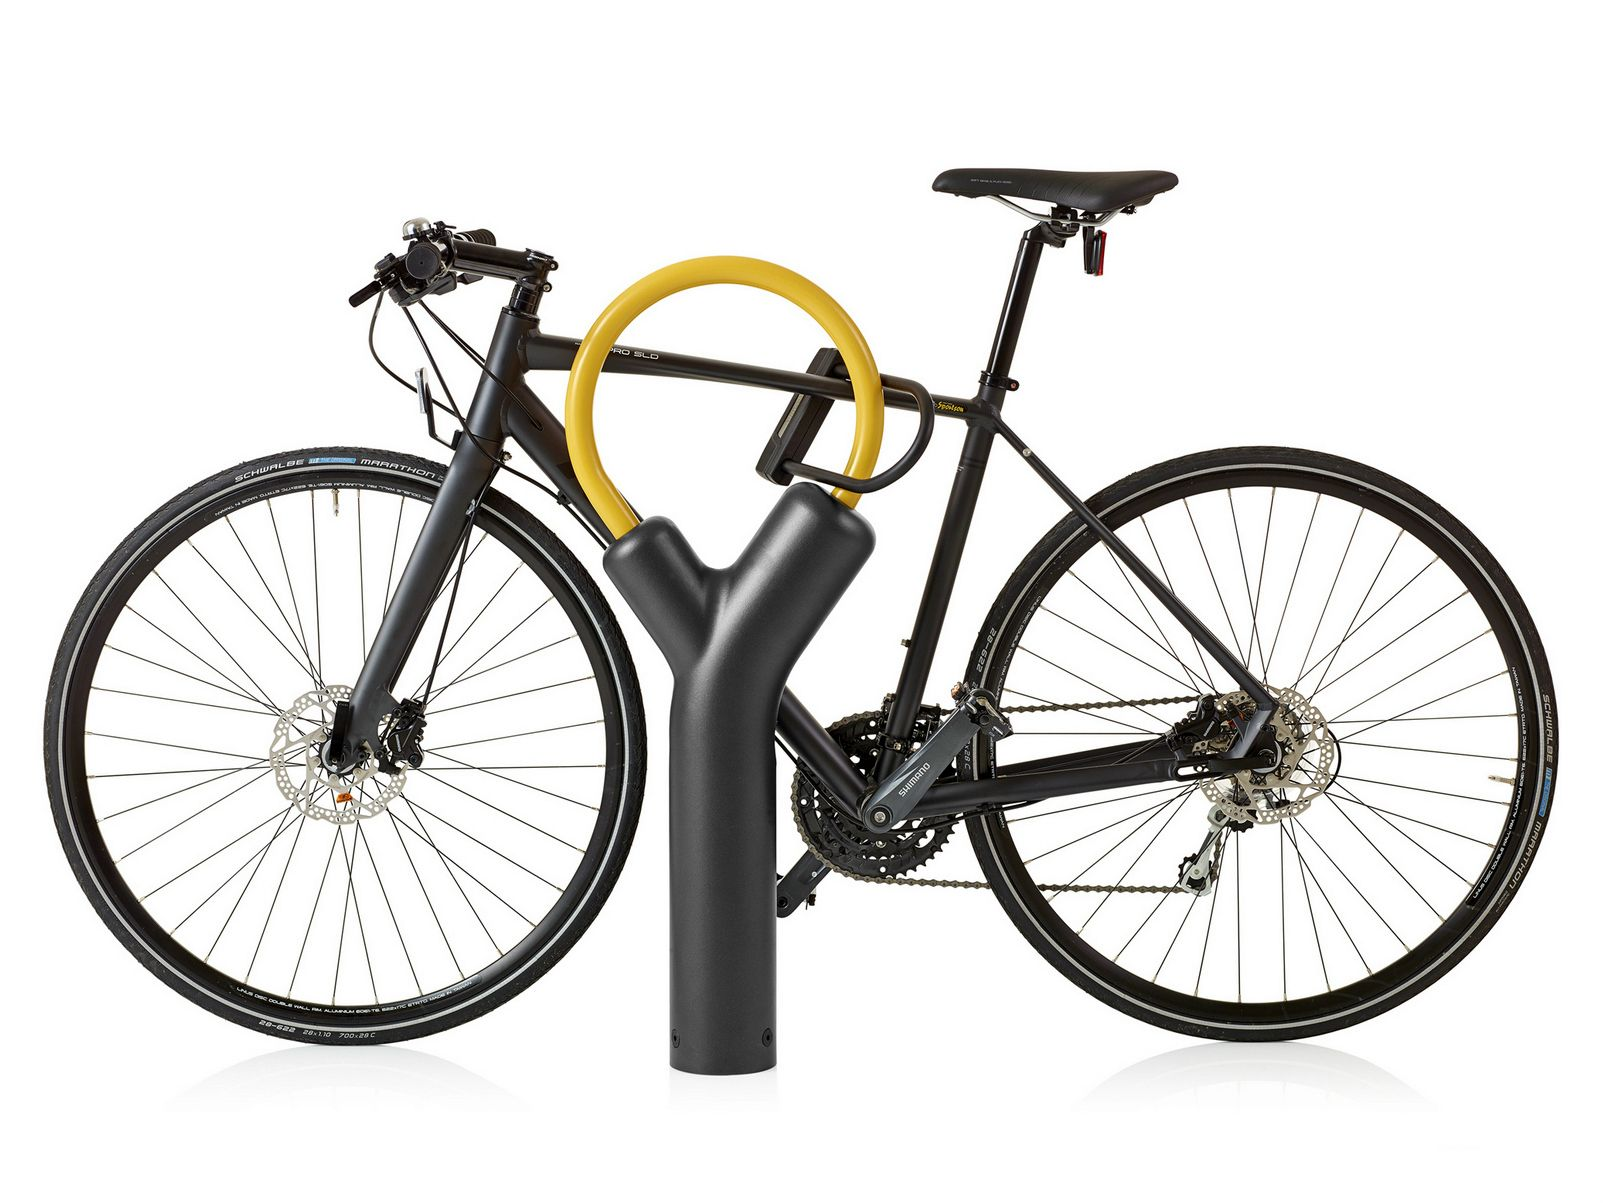 manufacturers bike including rack aluminum racks of costs strong popular topeak blackburn some commuter urban decent a new around with carrying good img and trek is york capable tools